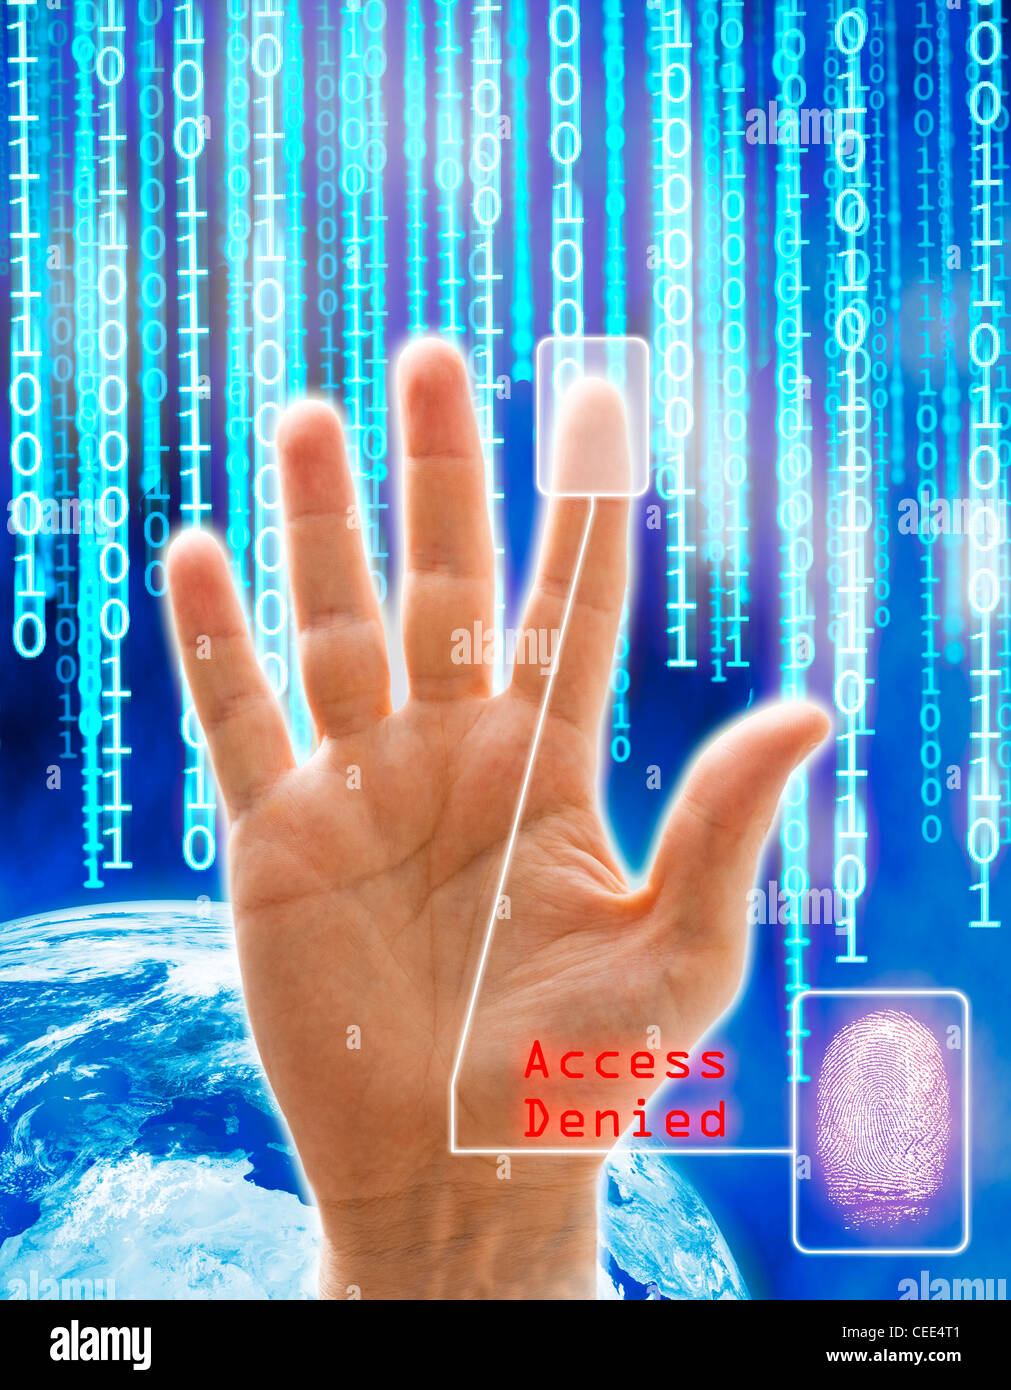 Image concept of security and technology. All the images are computer generated except the hand that is a physical - Stock Image